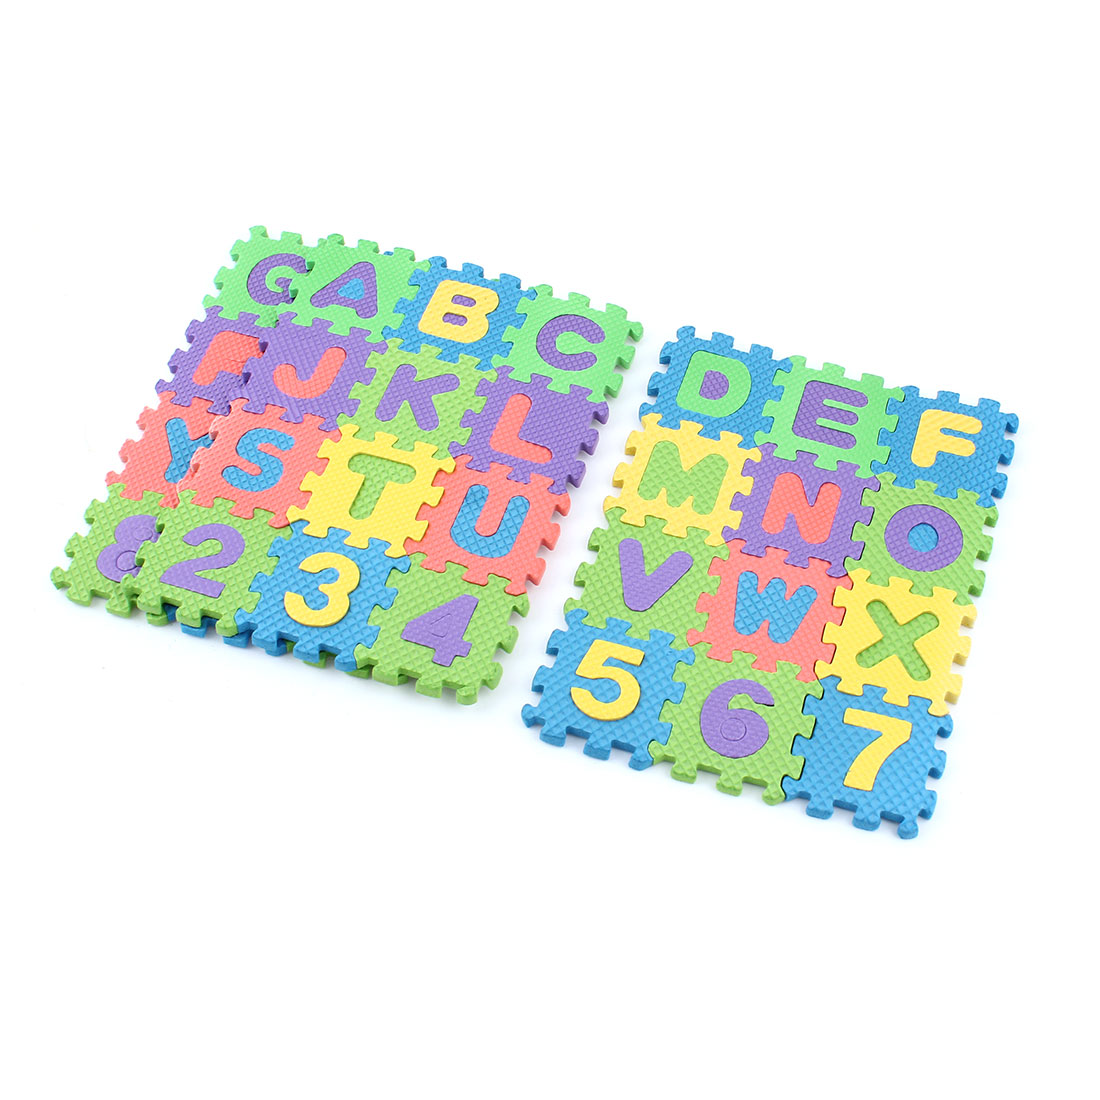 unique bargains 3 pcs 16cmx21cm interlock jigsaw puzzle foam floor mats assorted color